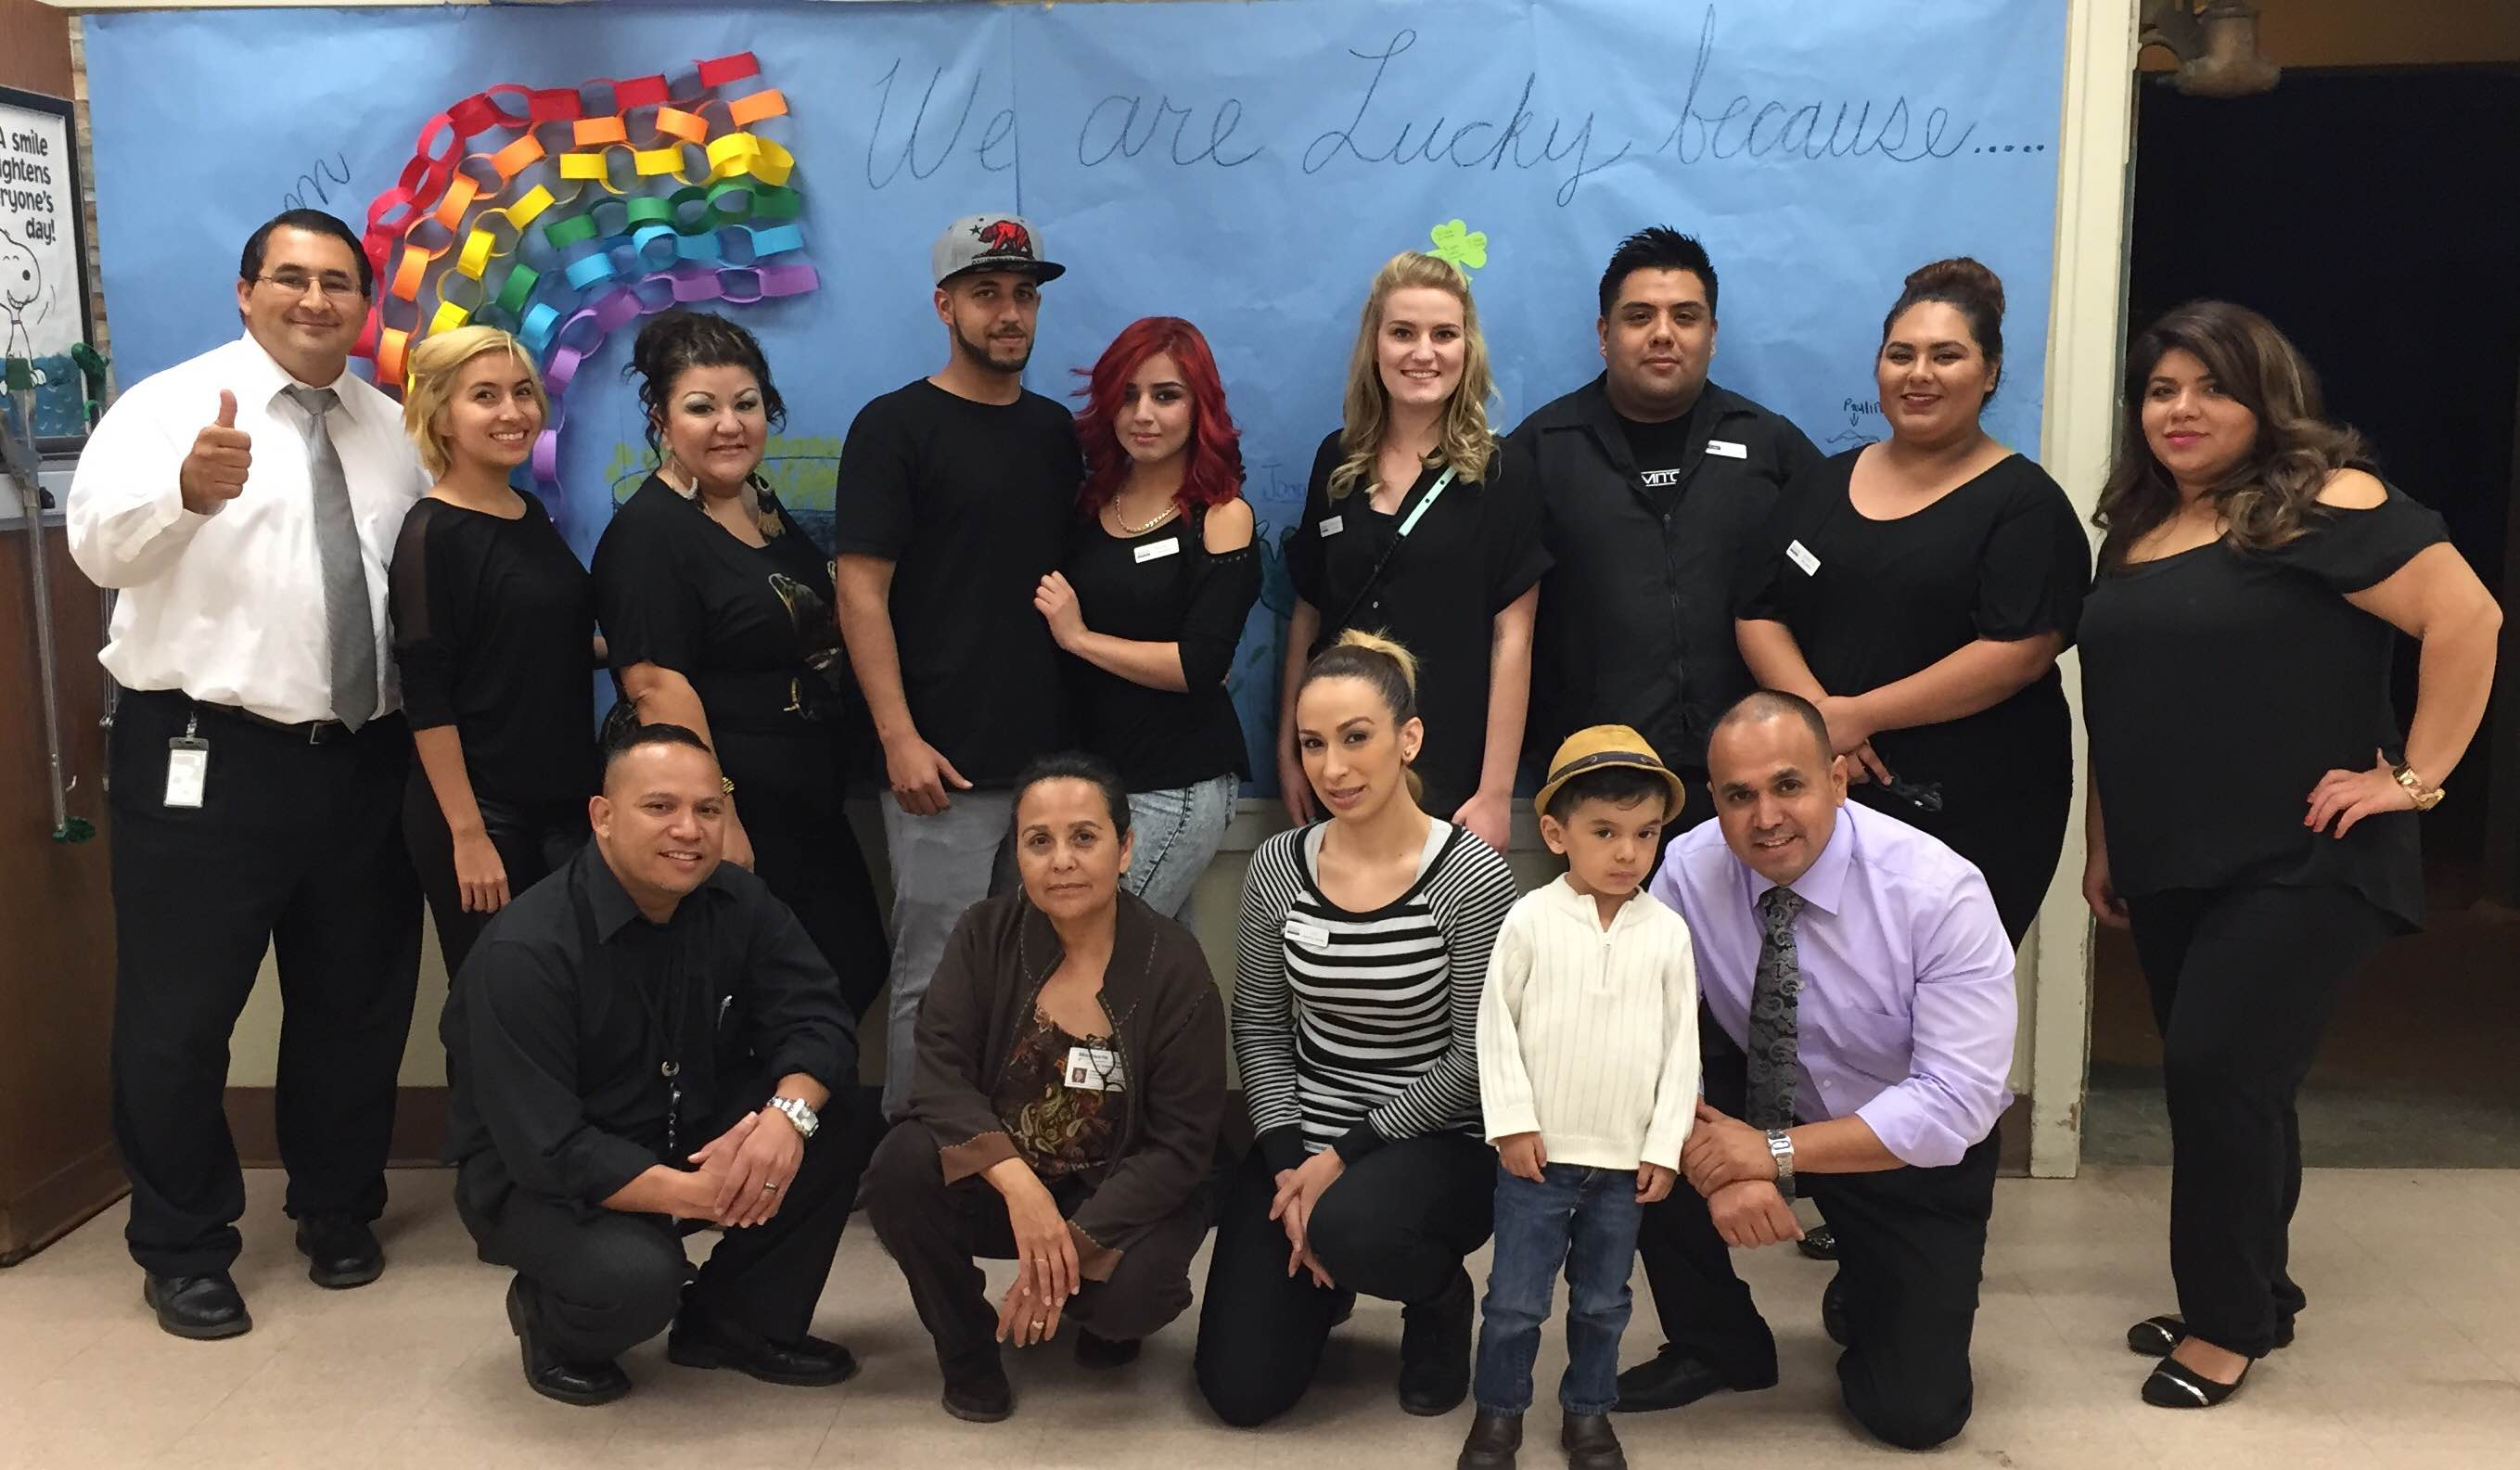 Free Haircuts For Kids At Shackleford Elementary